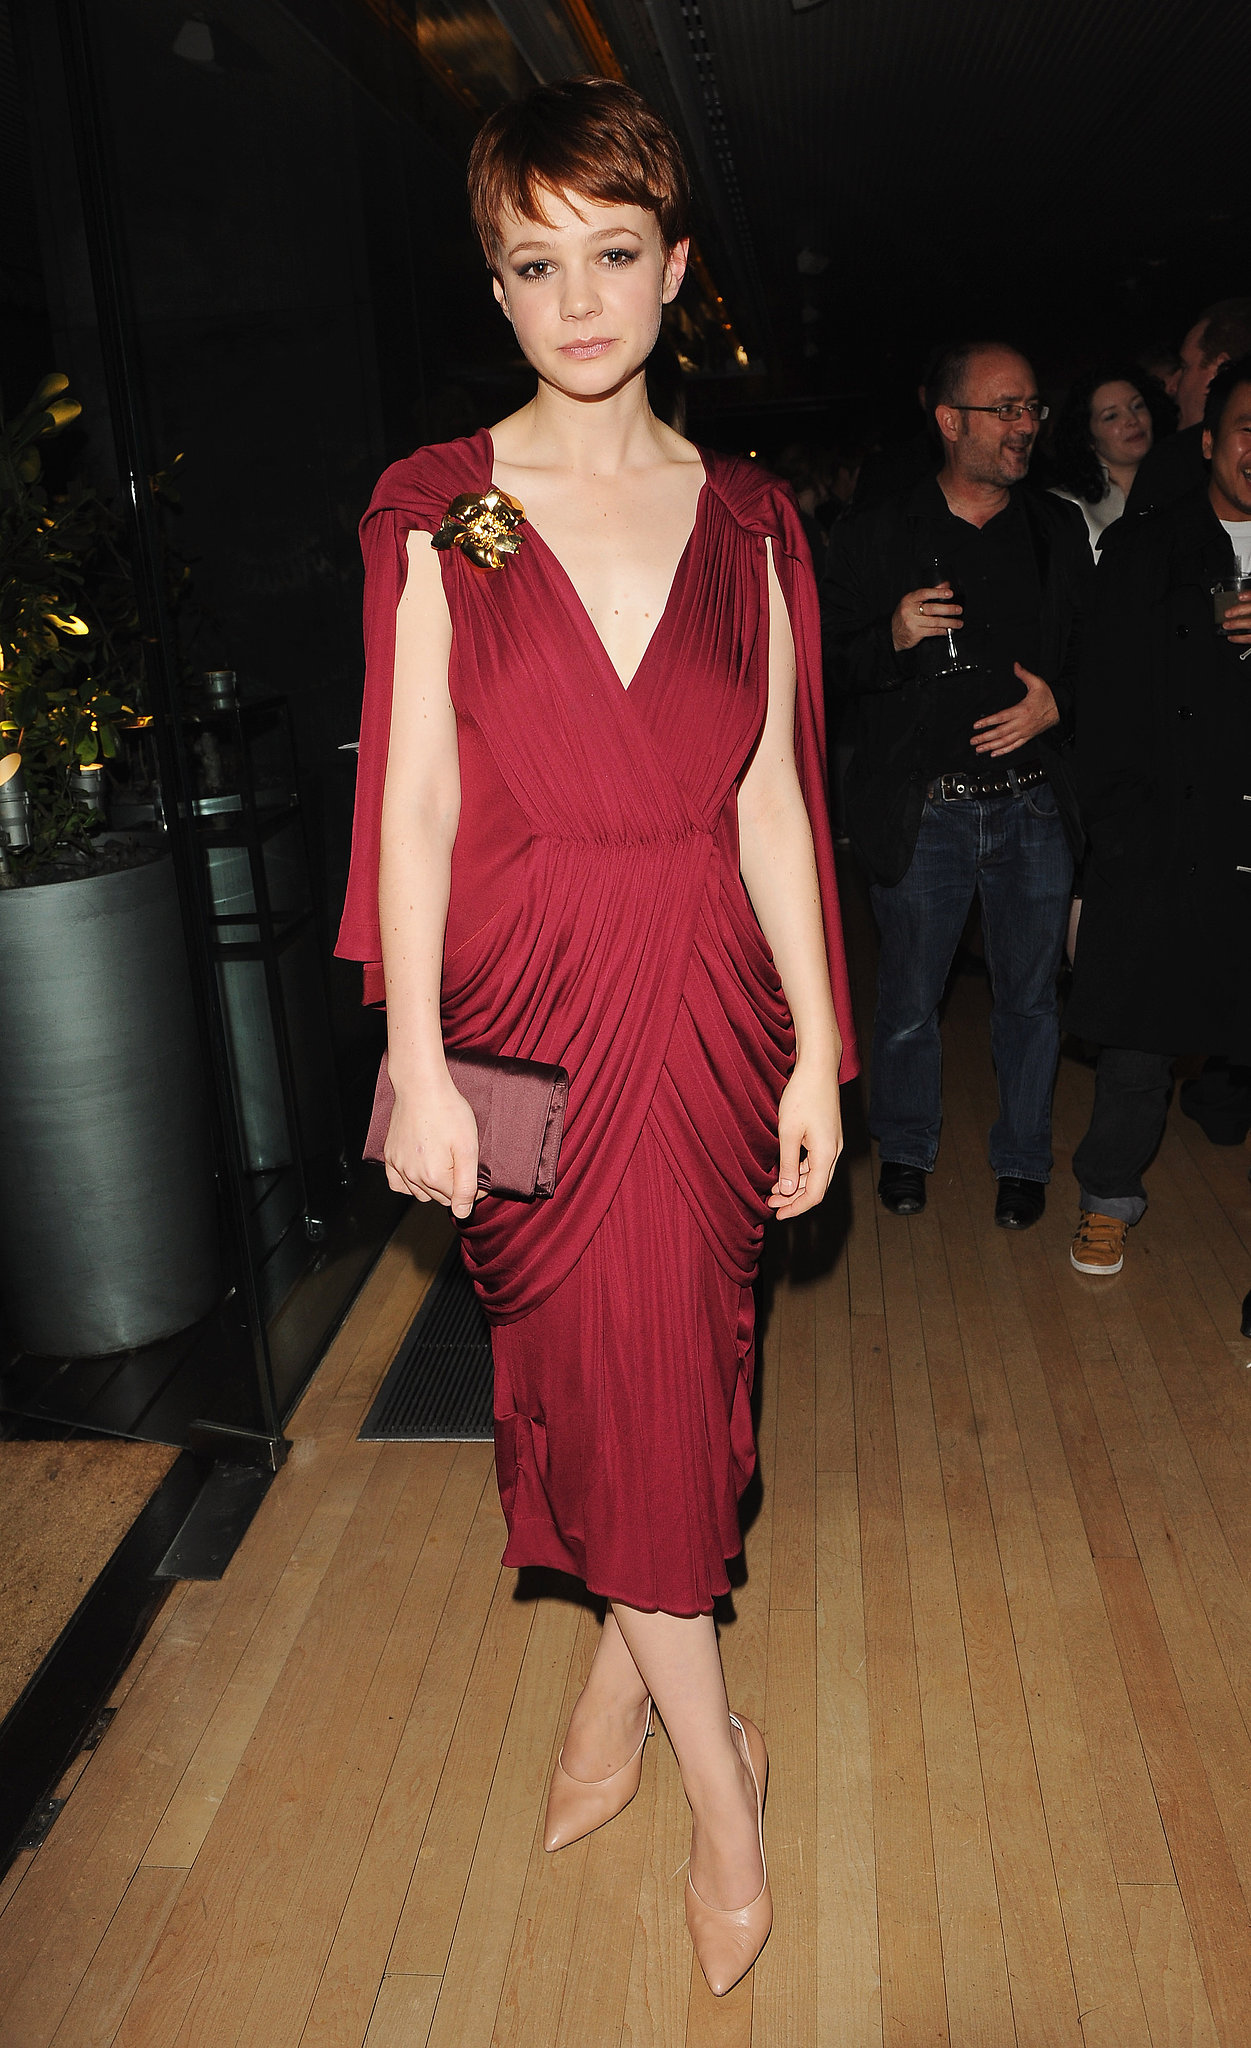 Carey Mulligan in Burgundy Vionnet at the 2009 BFI London Film Festival